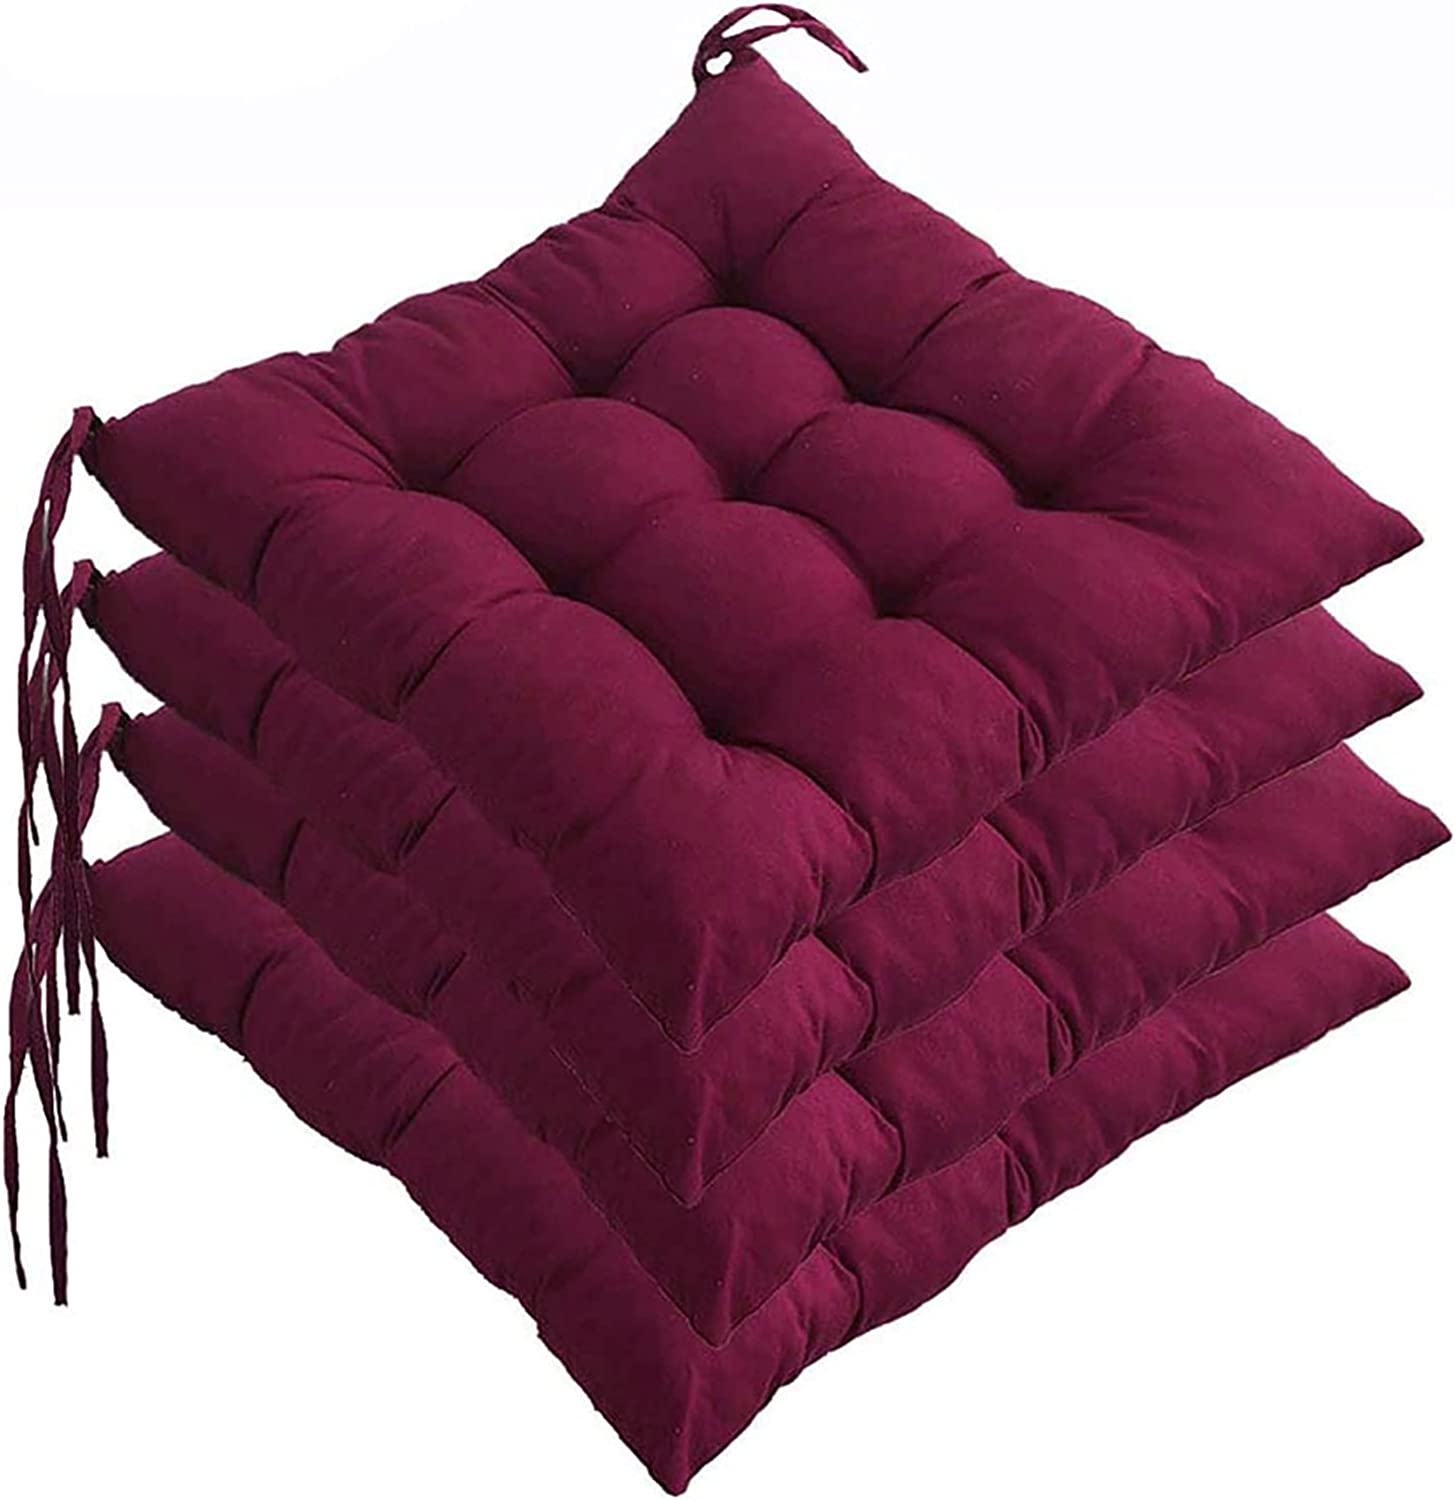 Cotton Chair Cheap Ranking TOP14 bargain Cushion Indoor and Square Dining Outdoor Wi